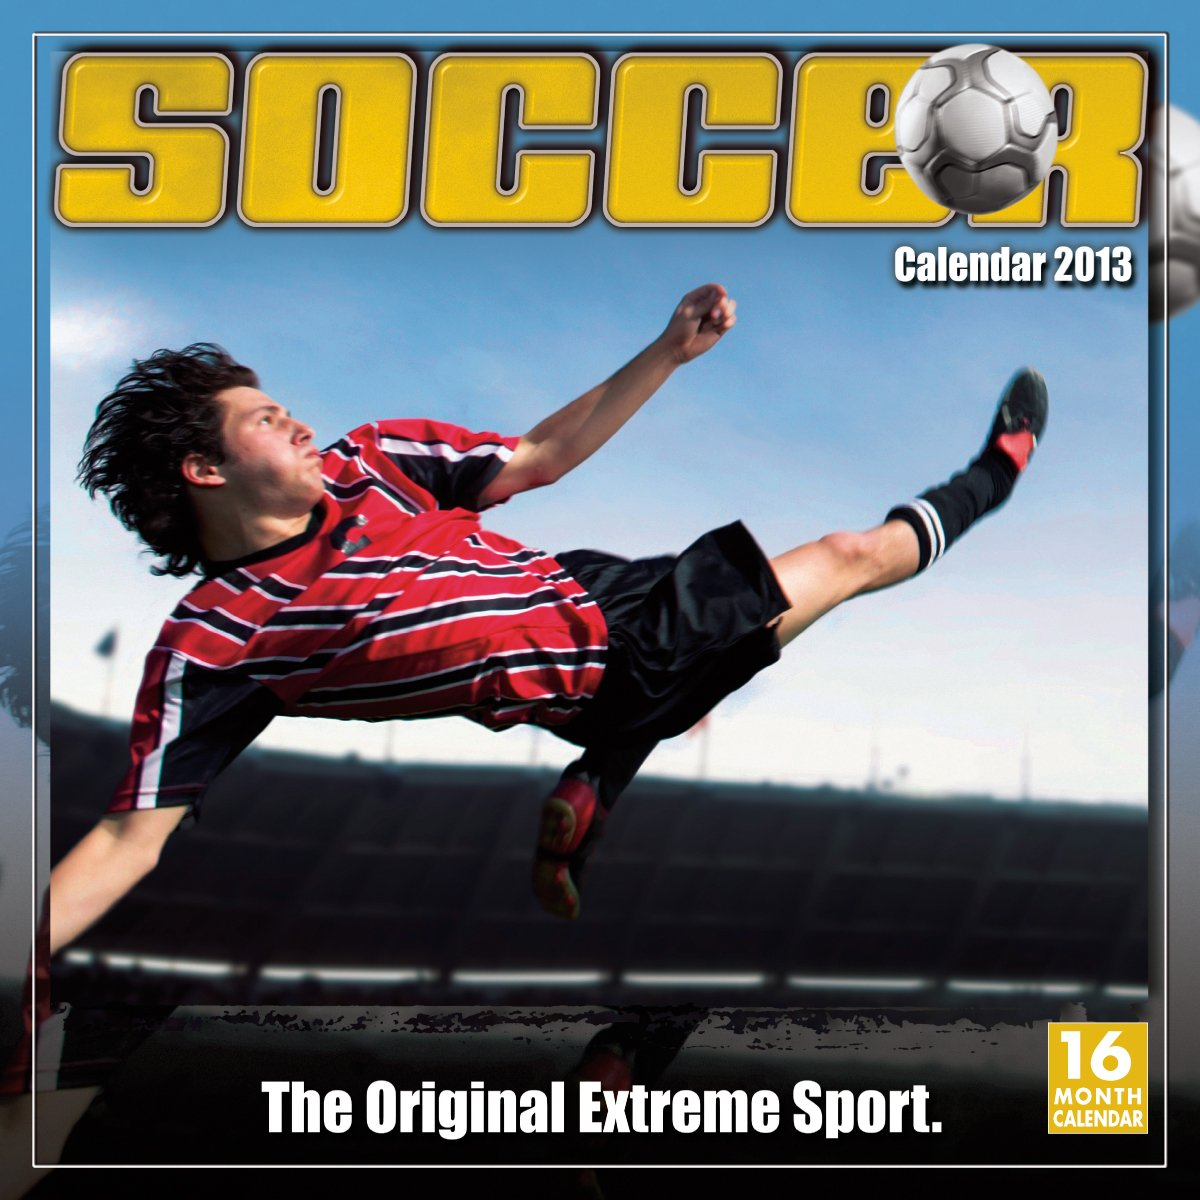 Soccer: The Original Extreme Sport 2013 Wall (calendar): Sellers  Publishing: 9781416289319: Amazon.com: Books